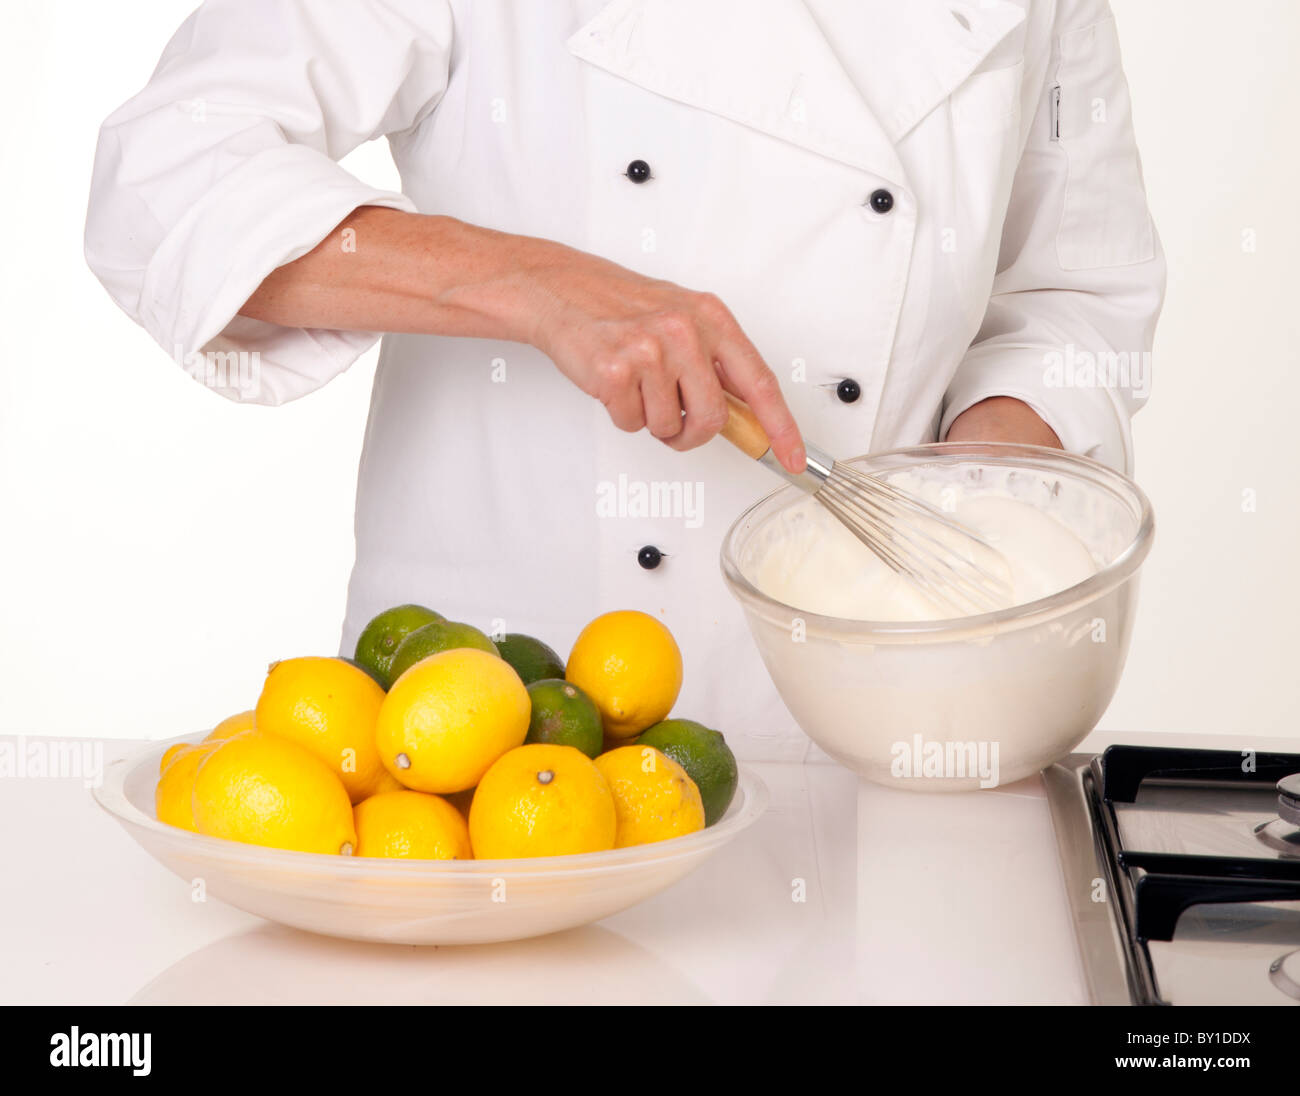 CHEF WHISKING EGG WHITES - Stock Image